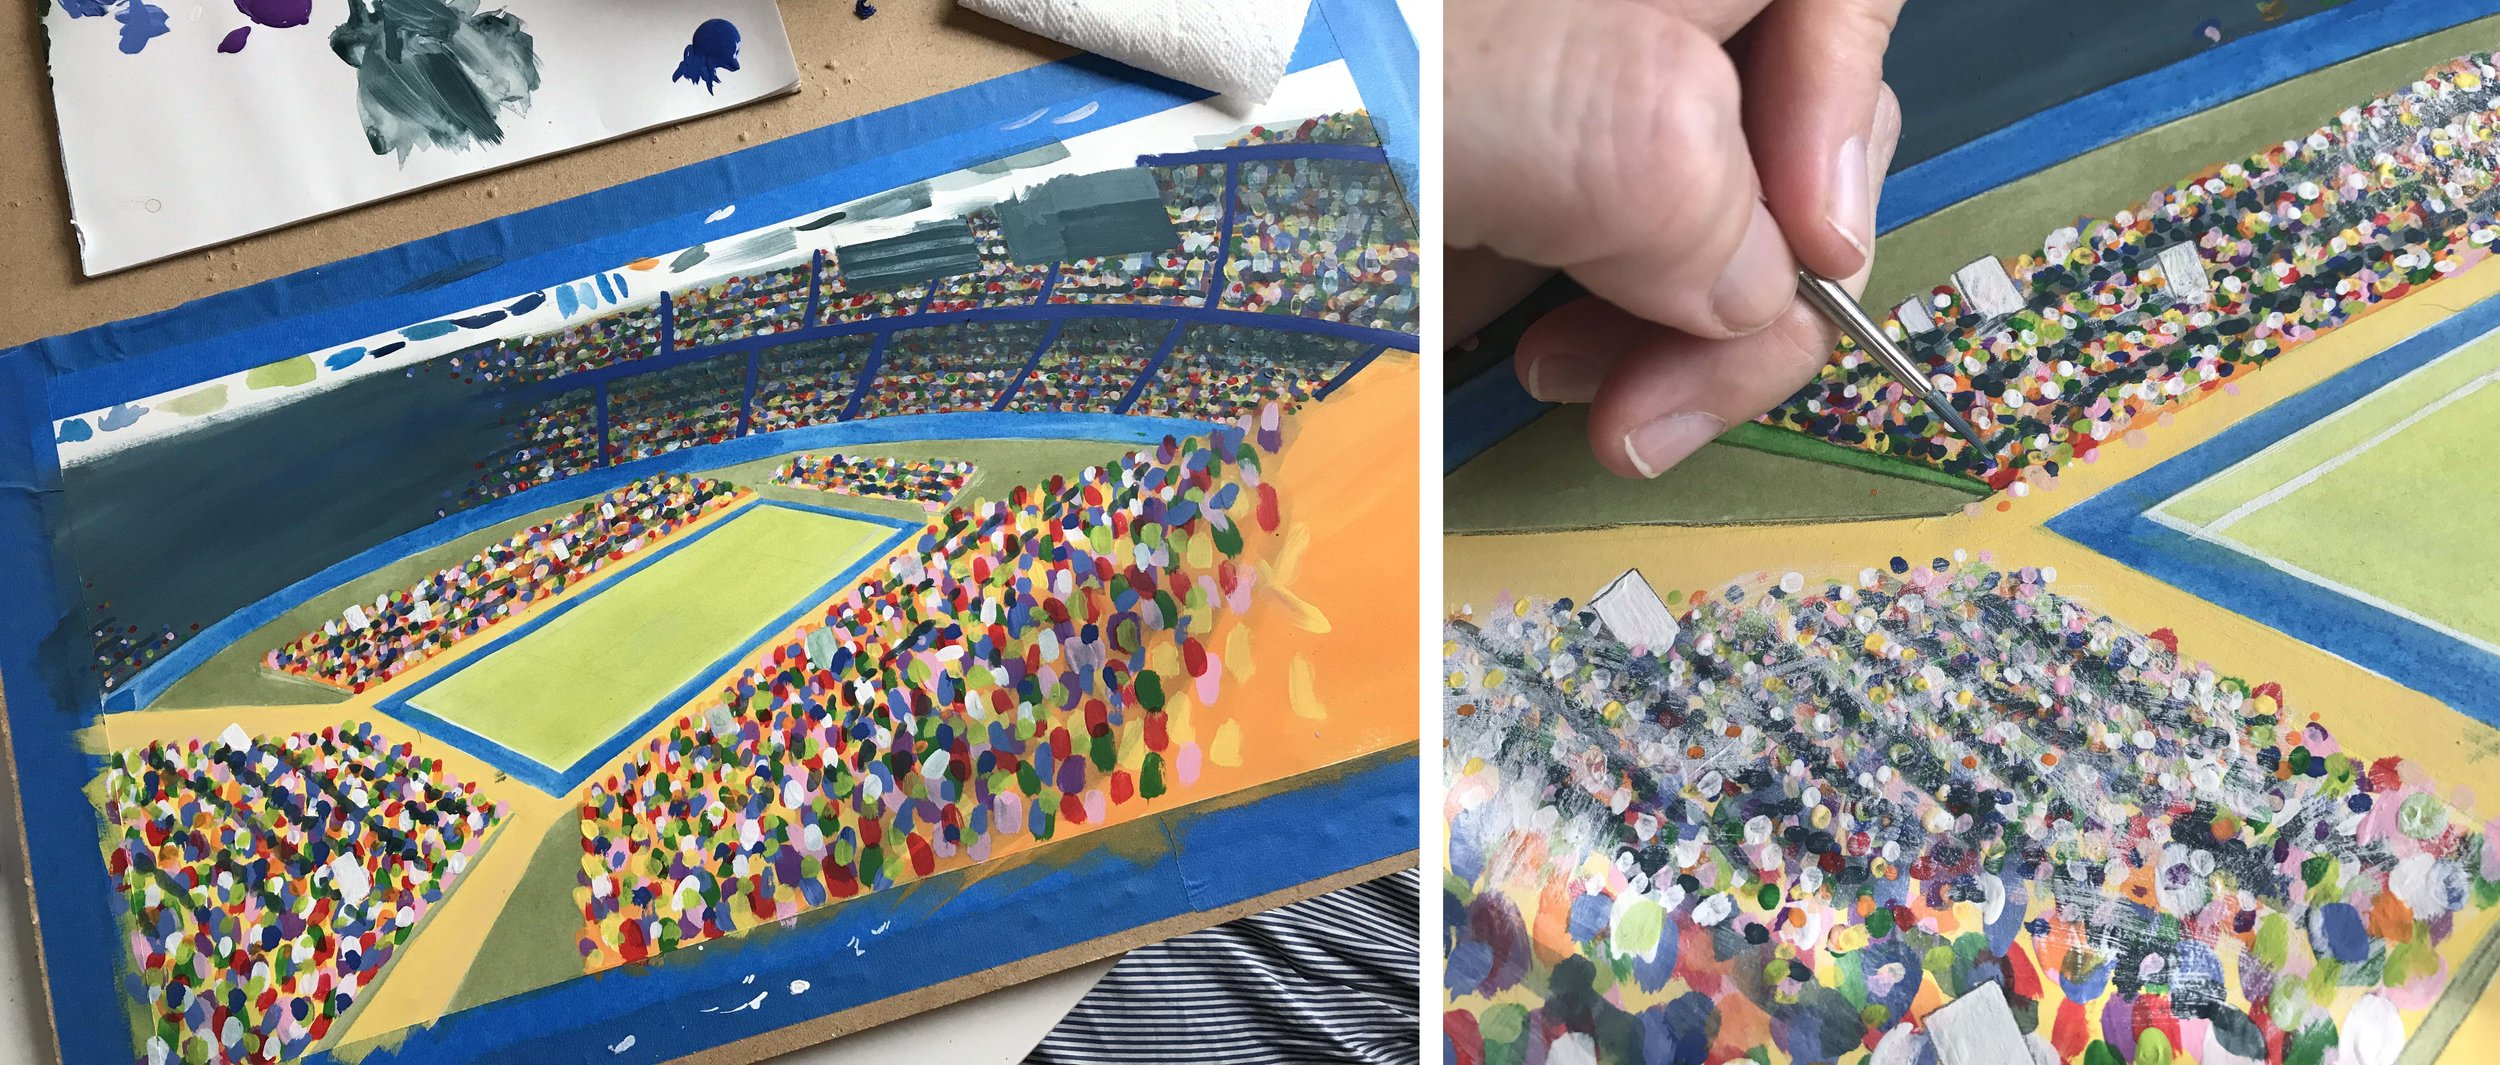 I will send a free book to whoever can guess what TV show I watched while painting the crowd scenes.